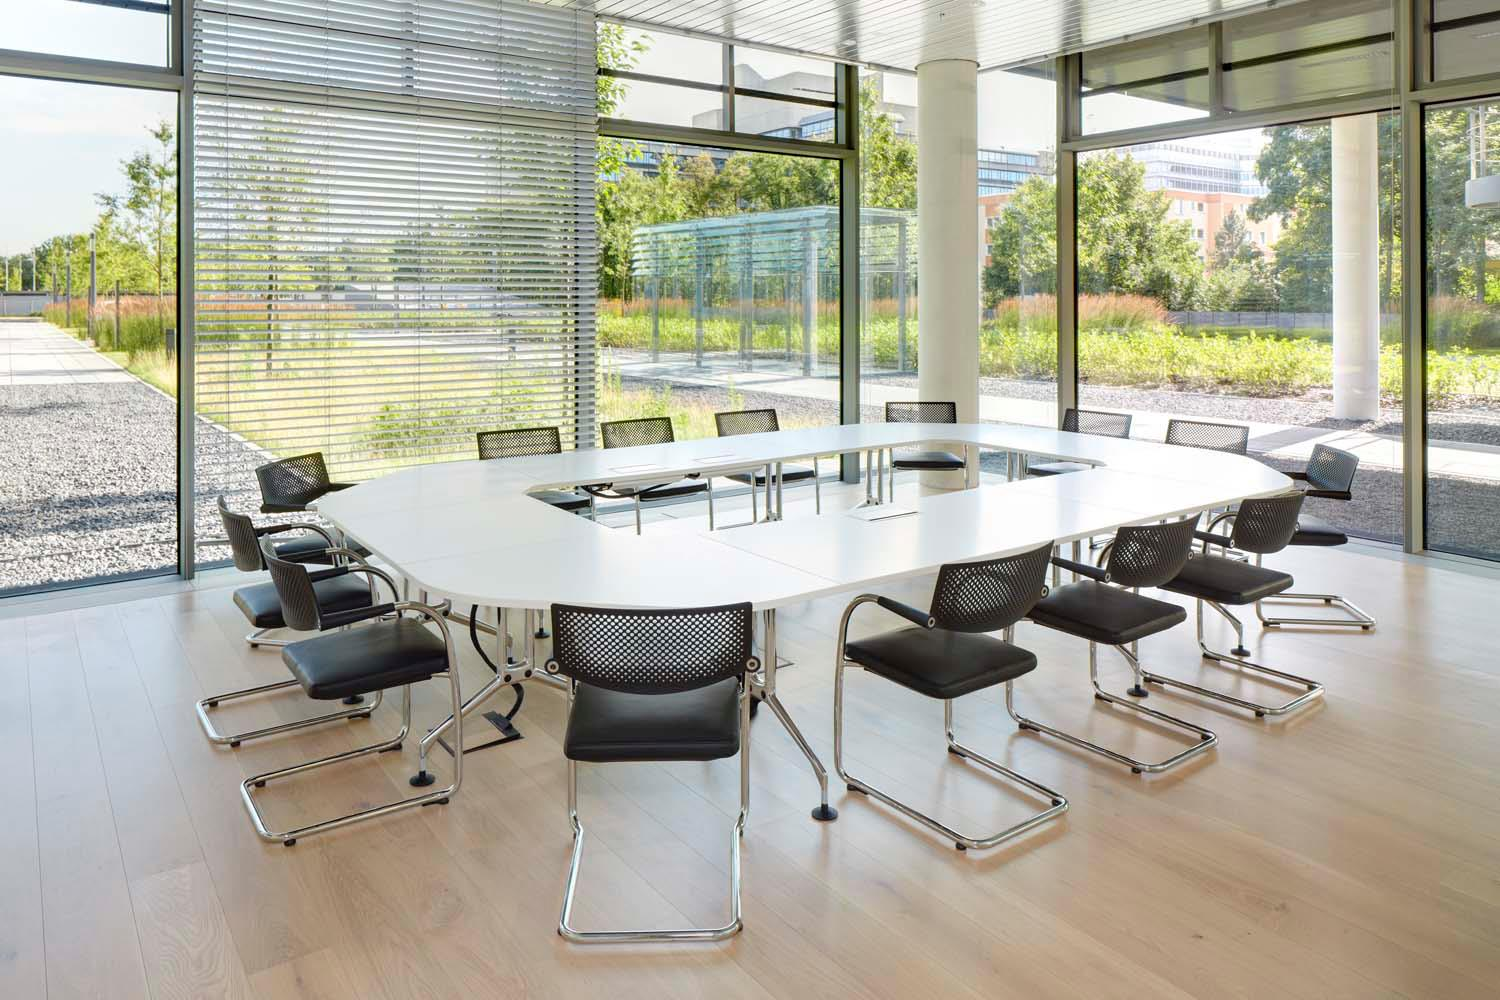 Vitra furniture hdi gerling talanx office hanover germany for Office design vitra